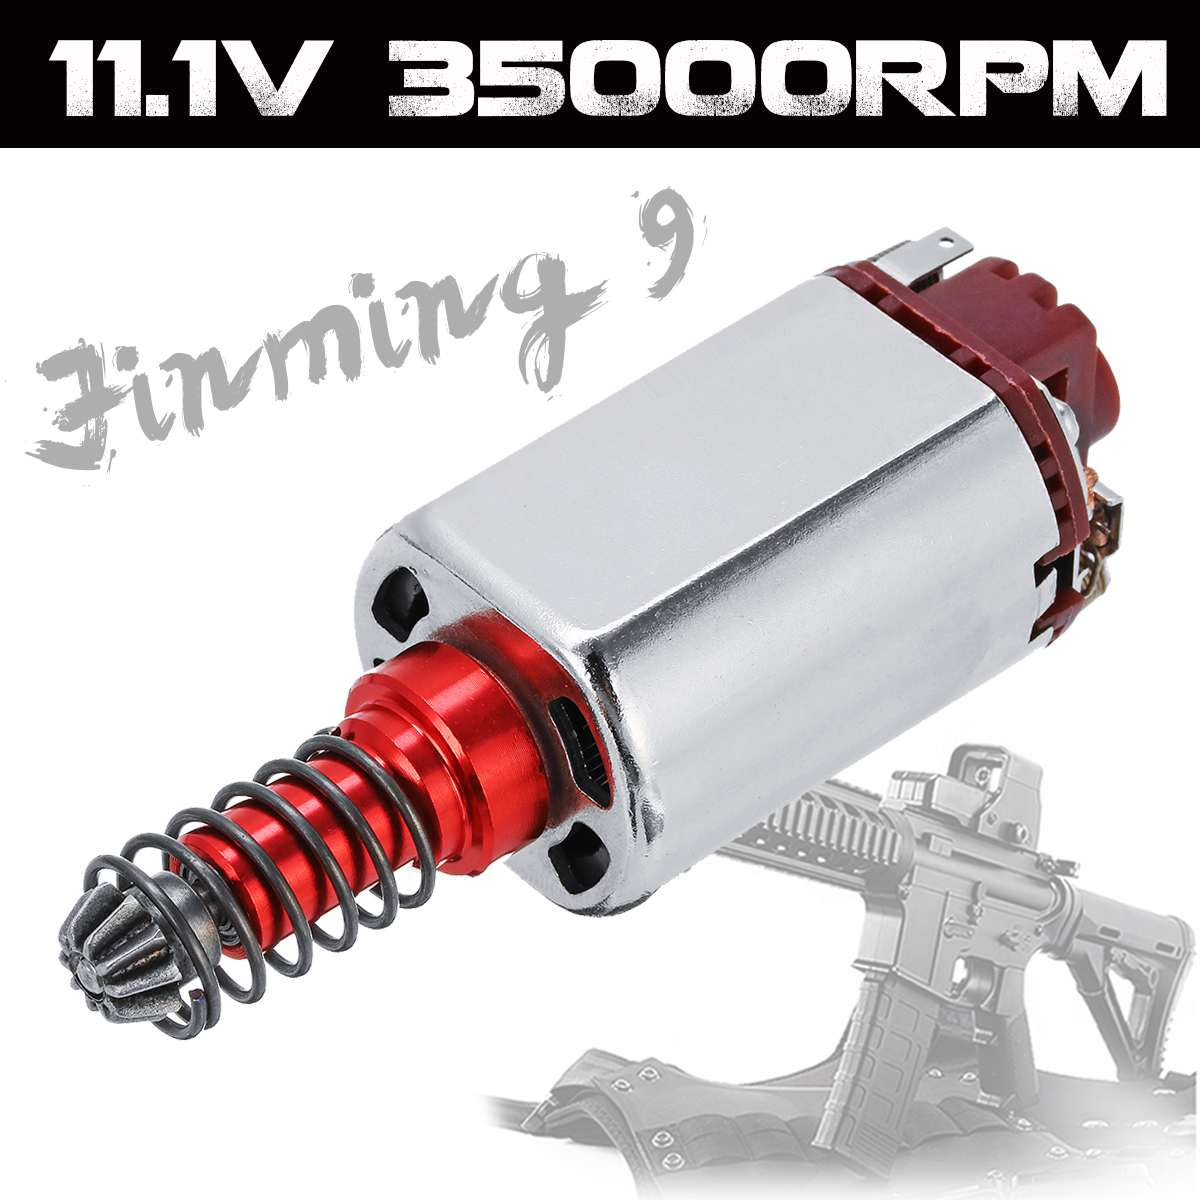 DC 11.1V 35000RPM 460 Motor For Jinming 9 M4A1 Gearbox Game Water Gel Ball Blasters Toy Guns Replacement Accessories